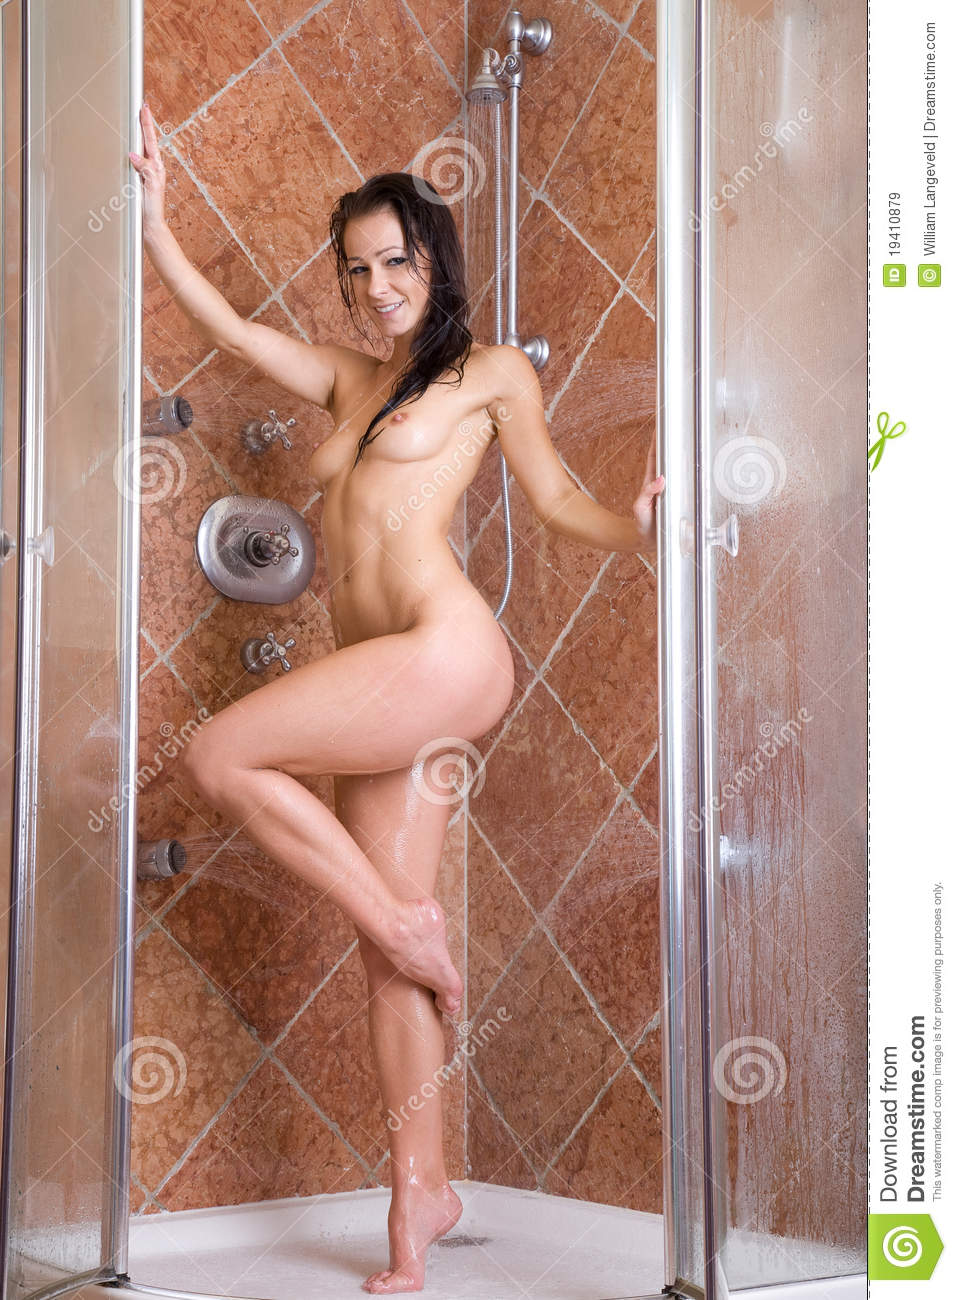 Hot naked girls taking a shower